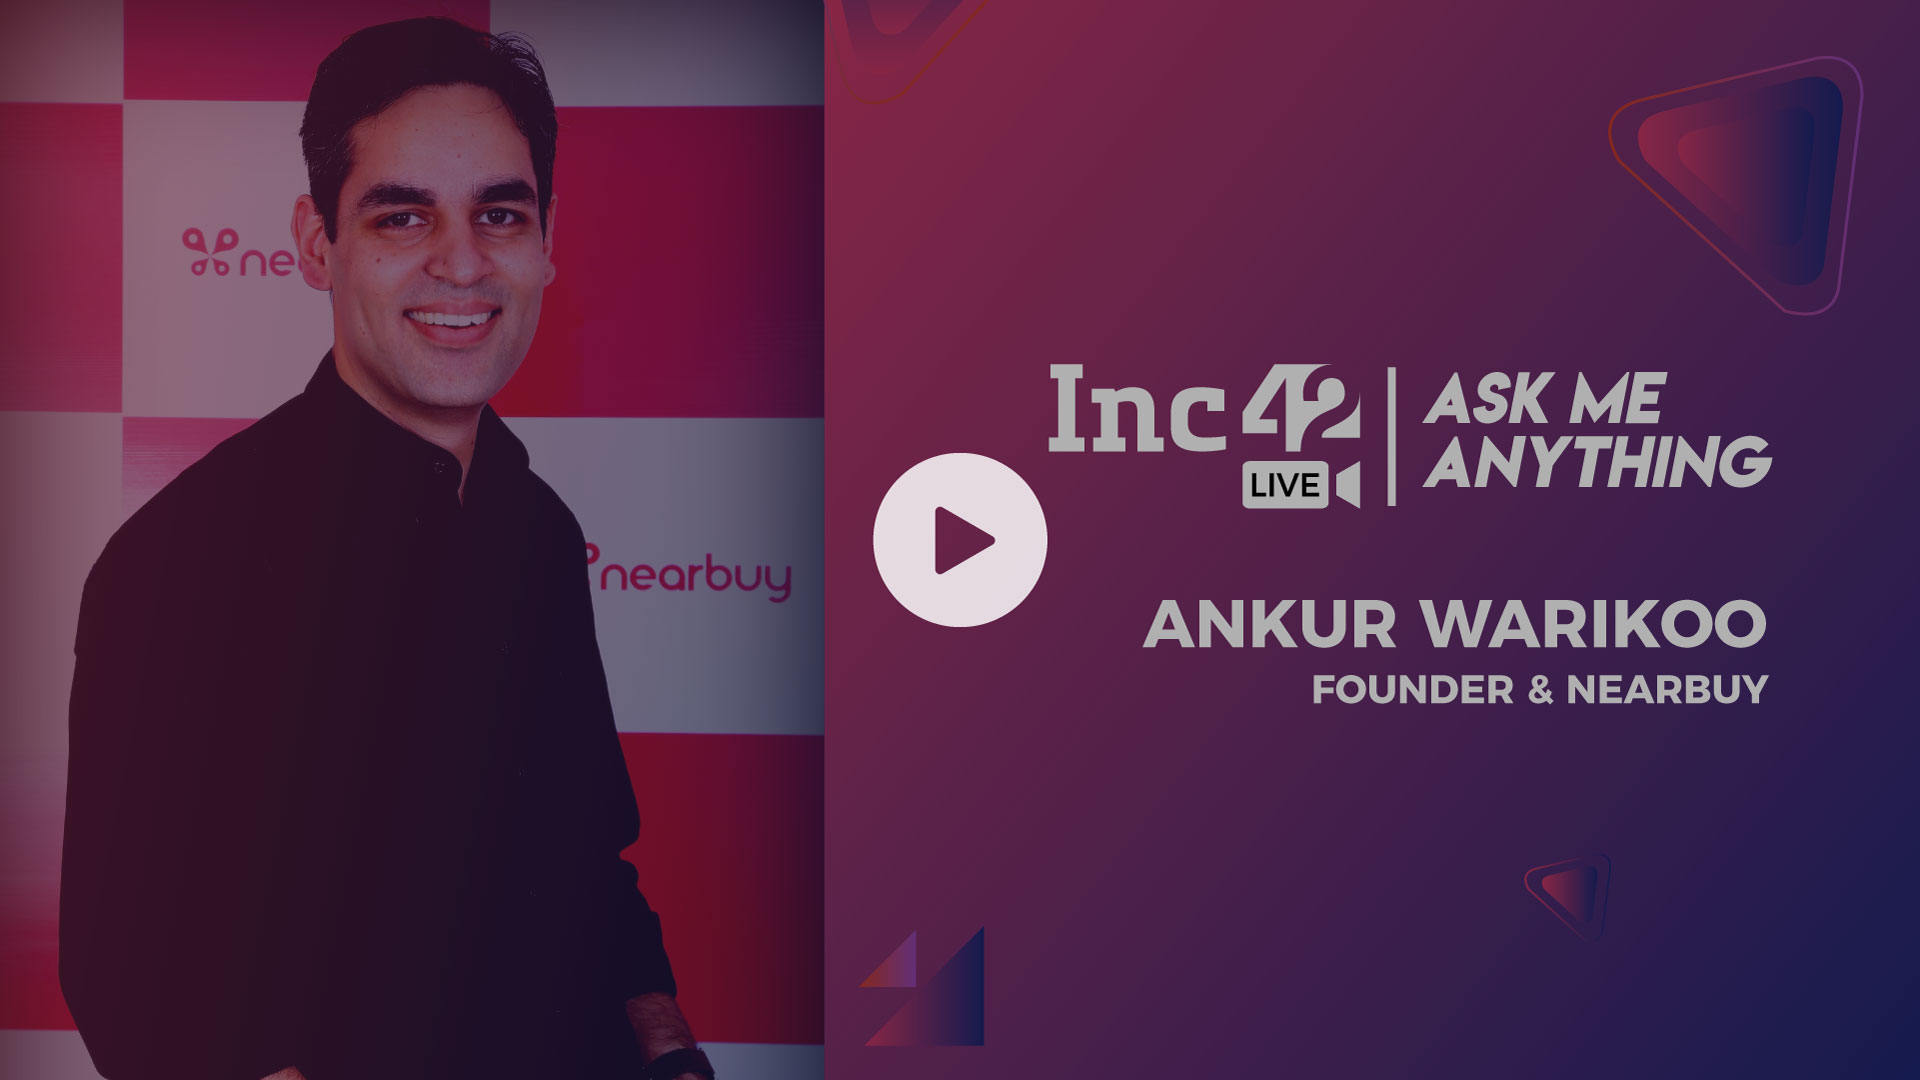 AMA with Ankur Warikoo, CEO of Nearbuy with Pallav Kaushish from Inc42